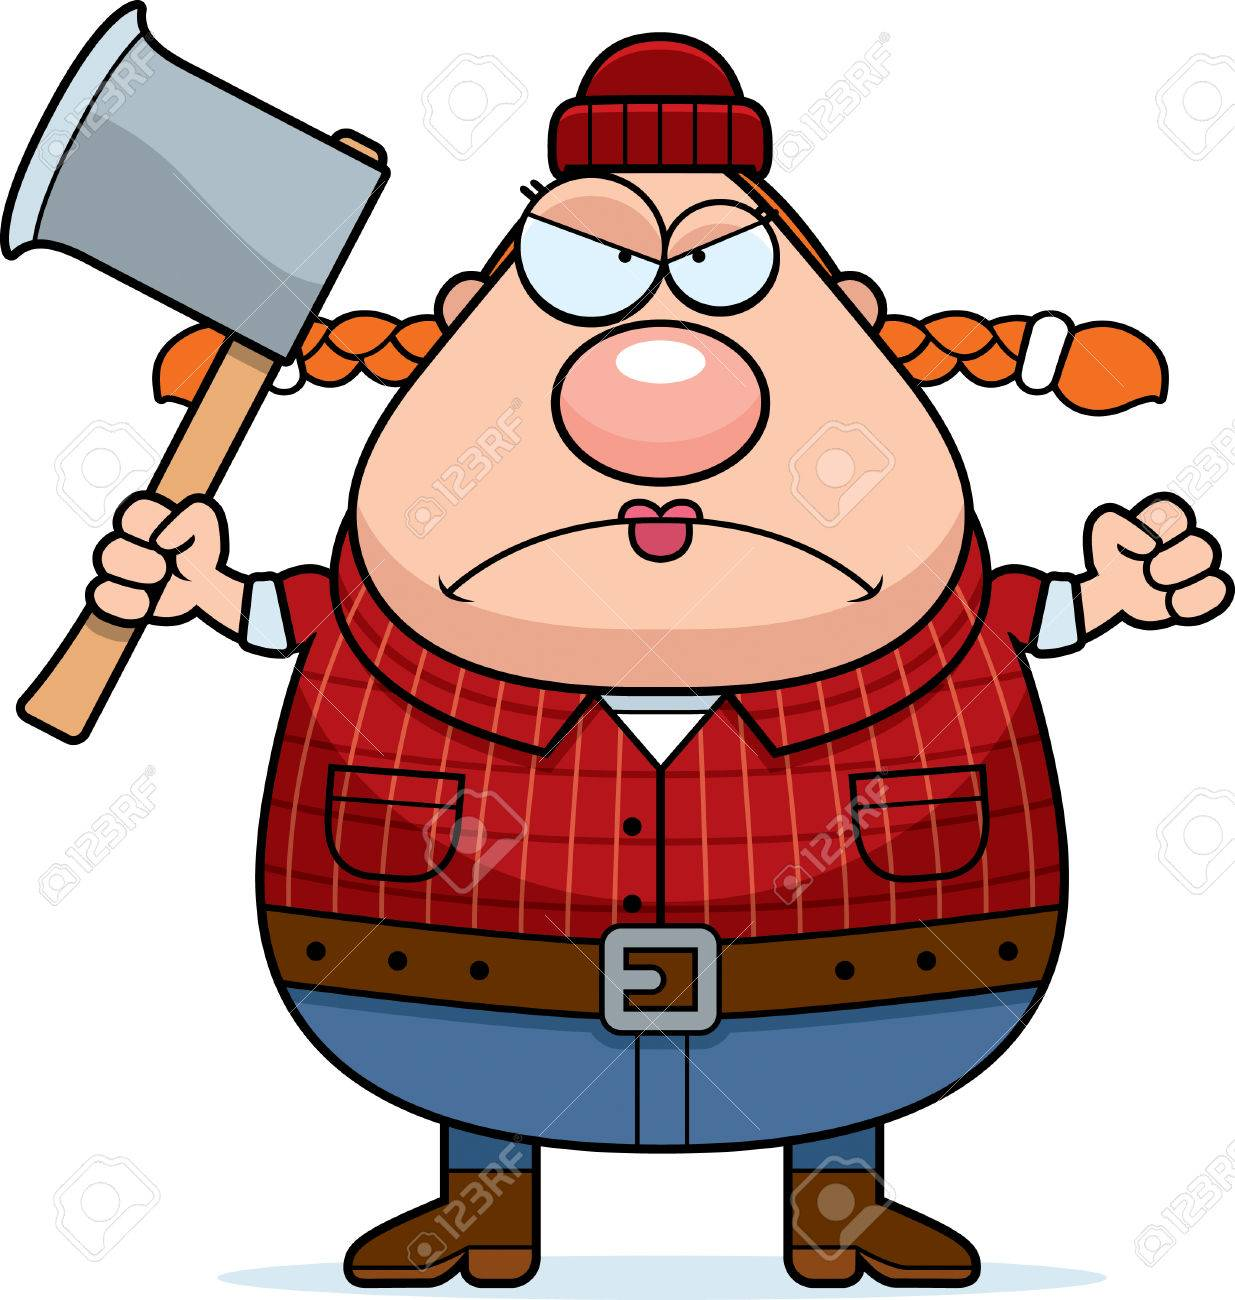 1235x1300 A Cartoon Illustration Of A Woman Lumberjack Looking Angry